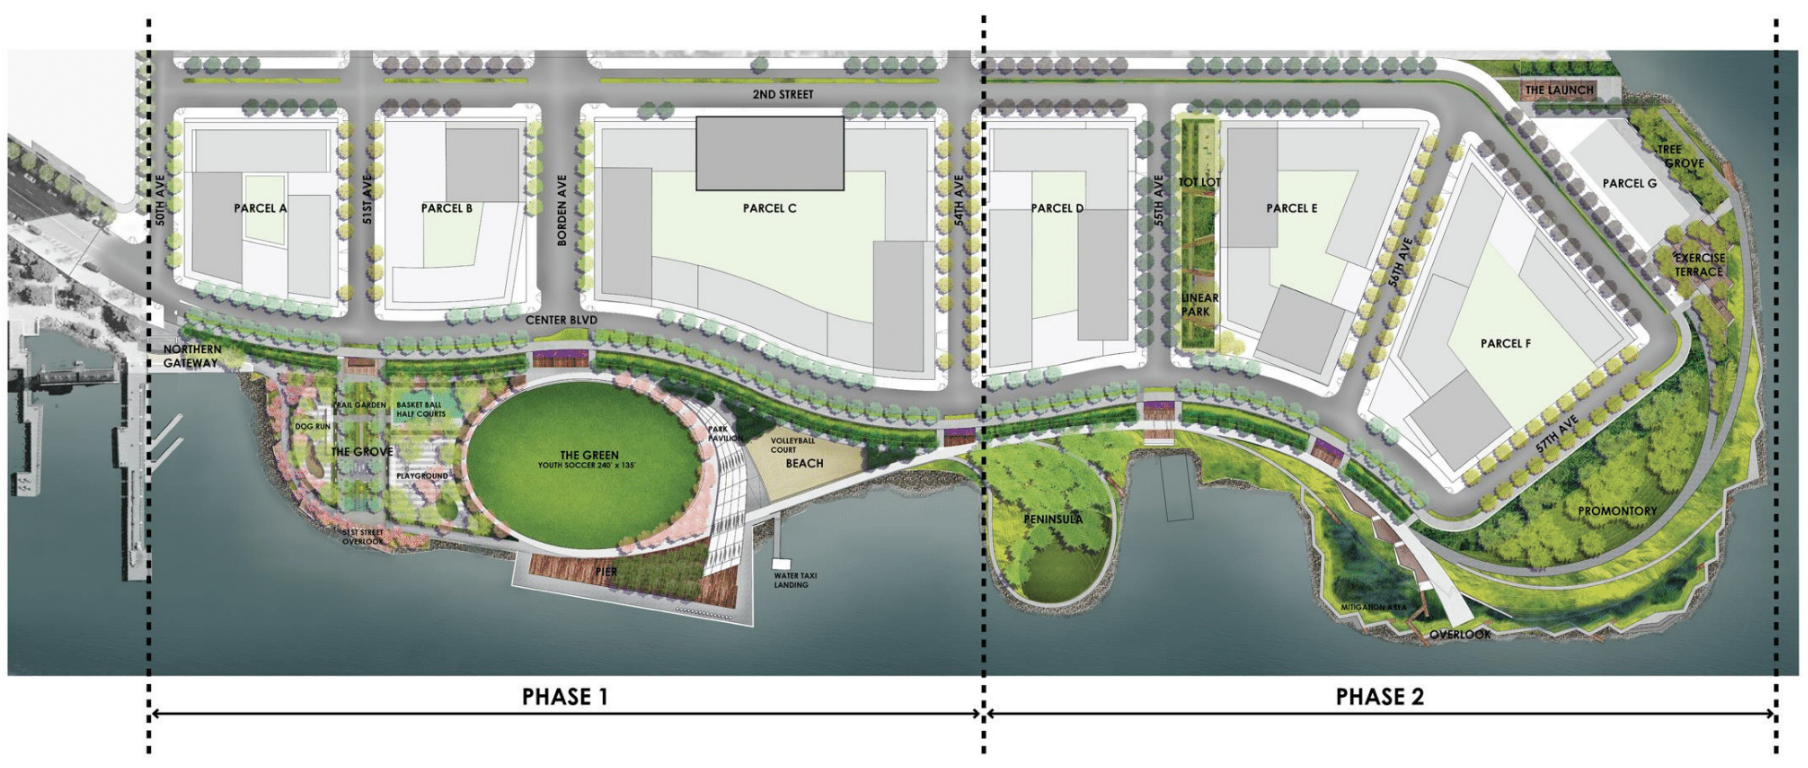 Design Plan of Hunter's Point South Phase II